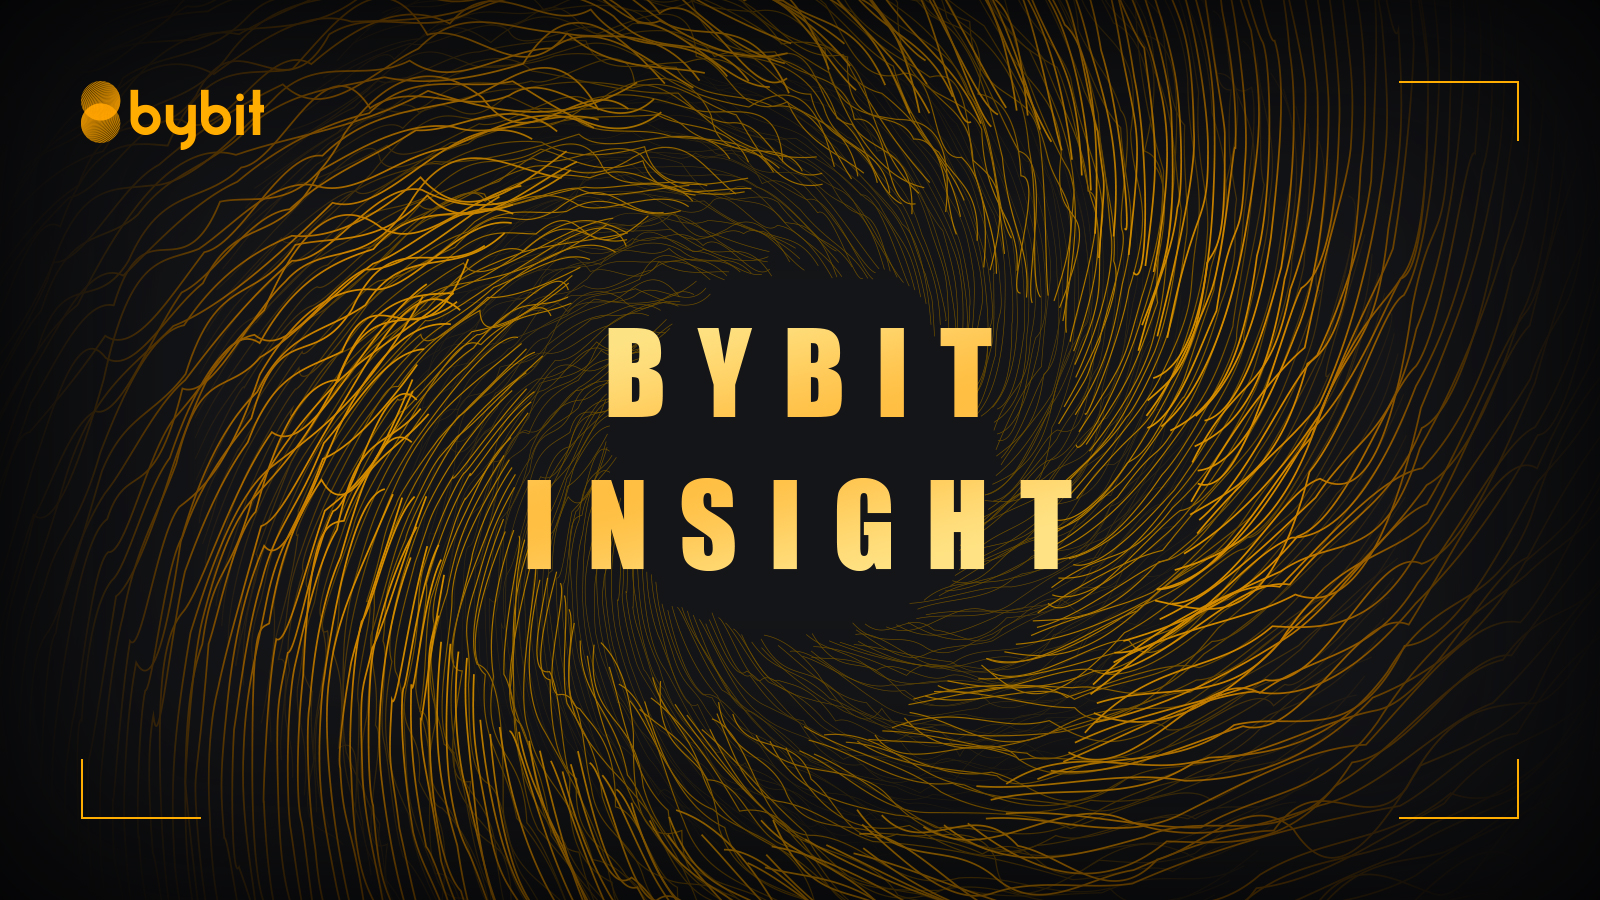 Bybit Insights